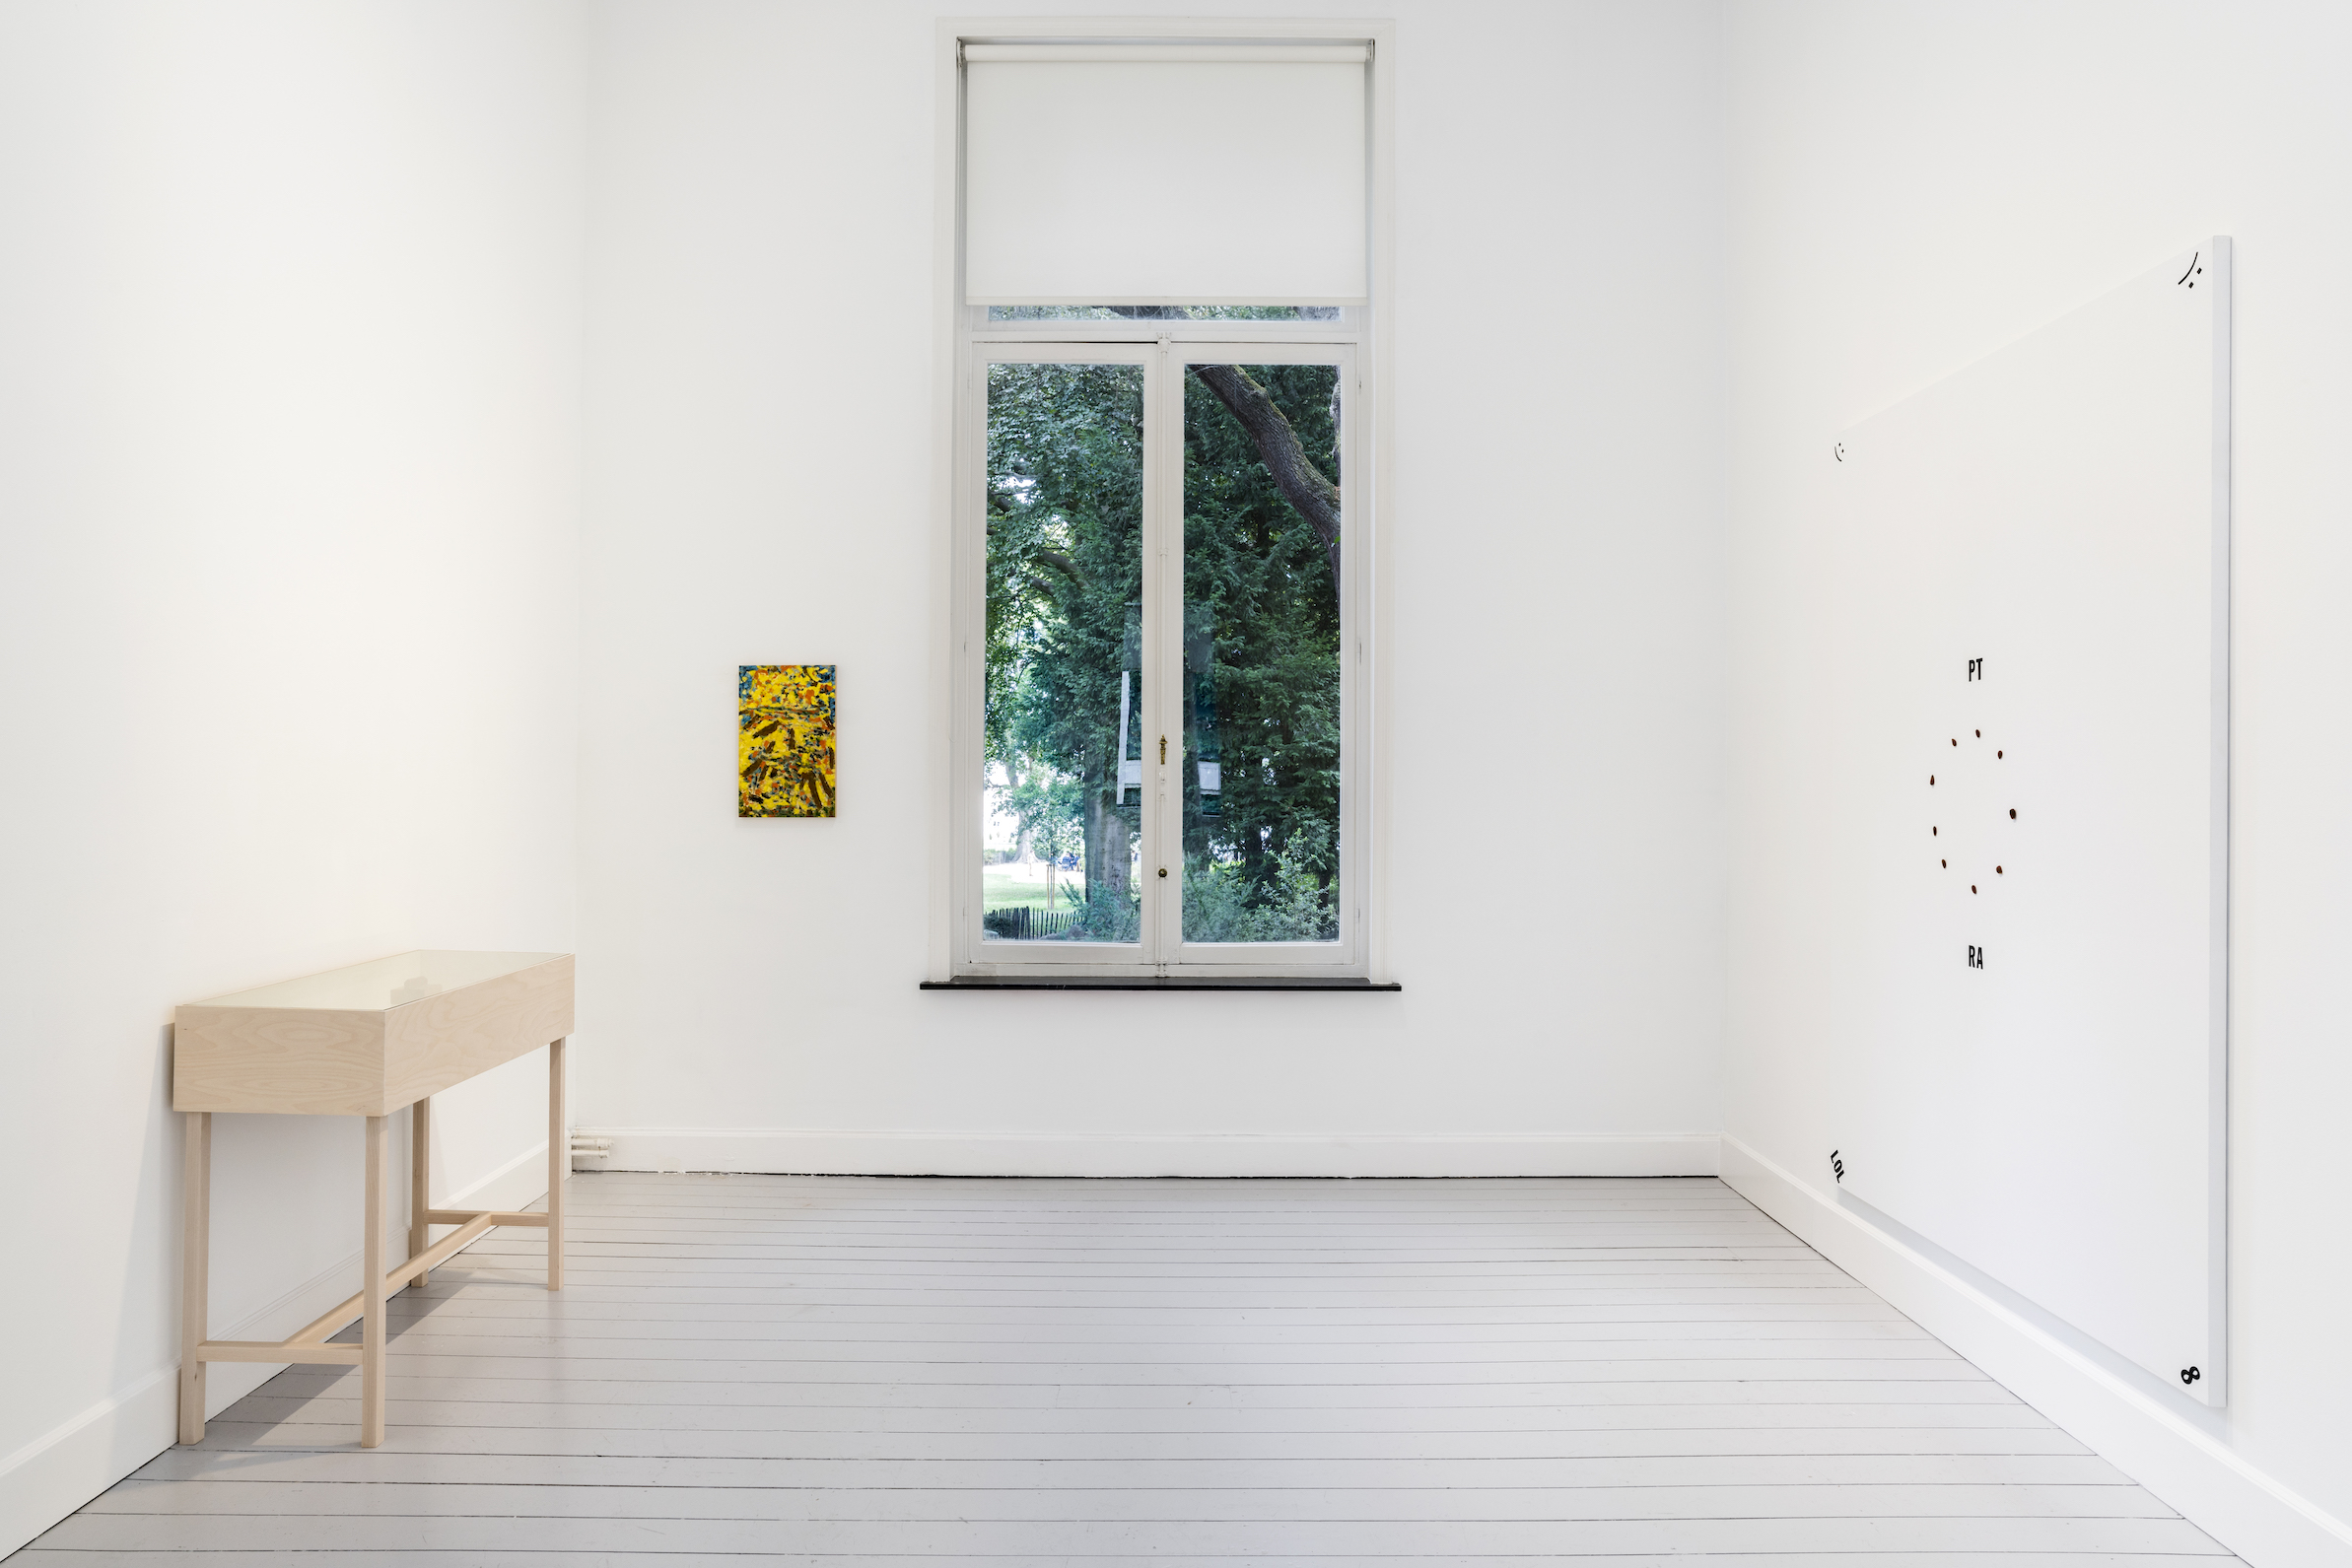 Installation View 4: Richard Aldrich, at Gladstone Gallery, Brussels, 2020 Courtesy the artist and Gladstone Gallery, New York and Brussels